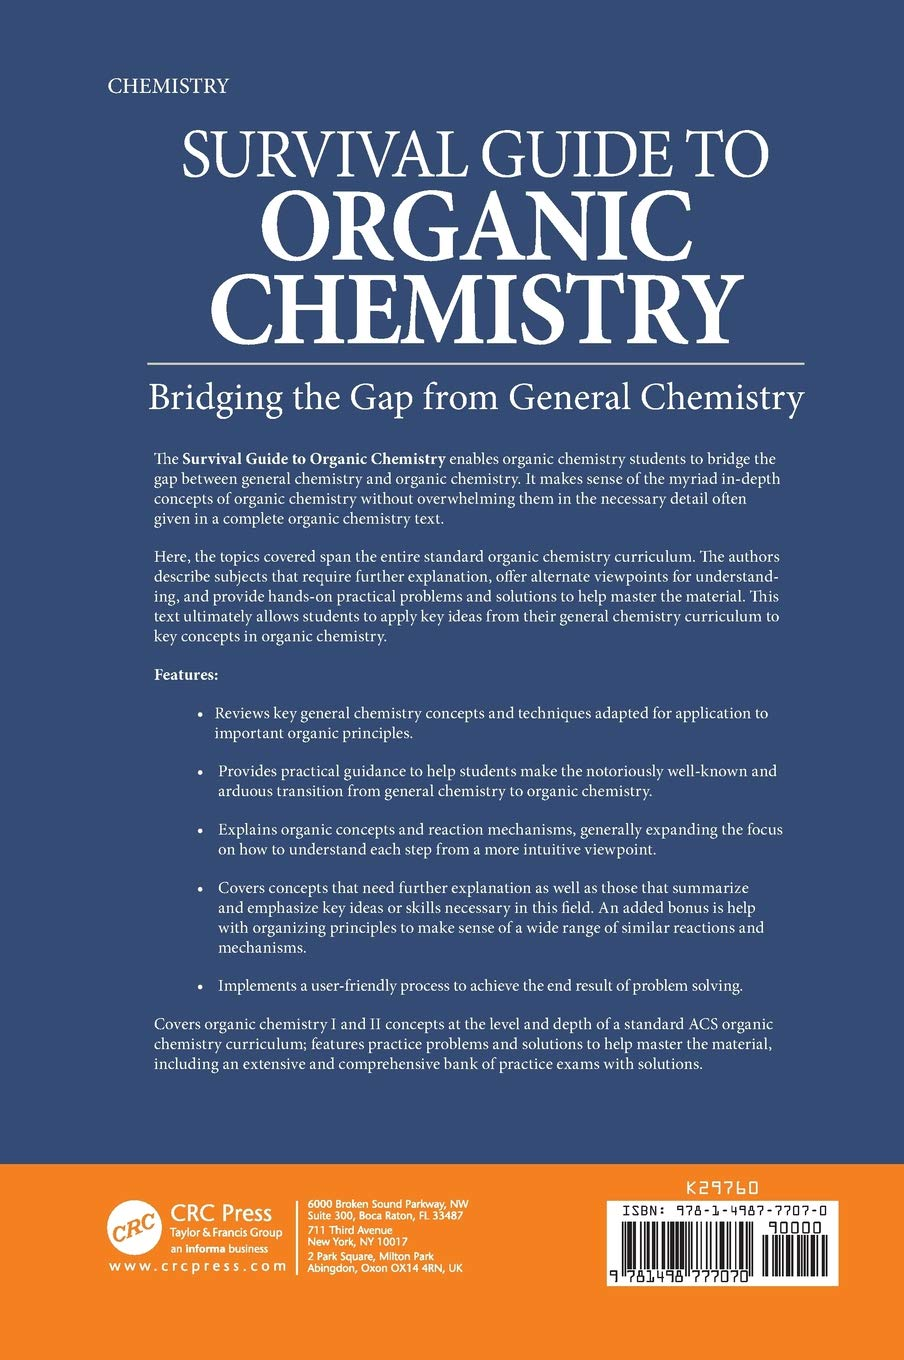 Buy Survival Guide to Organic Chemistry: Bridging the Gap from